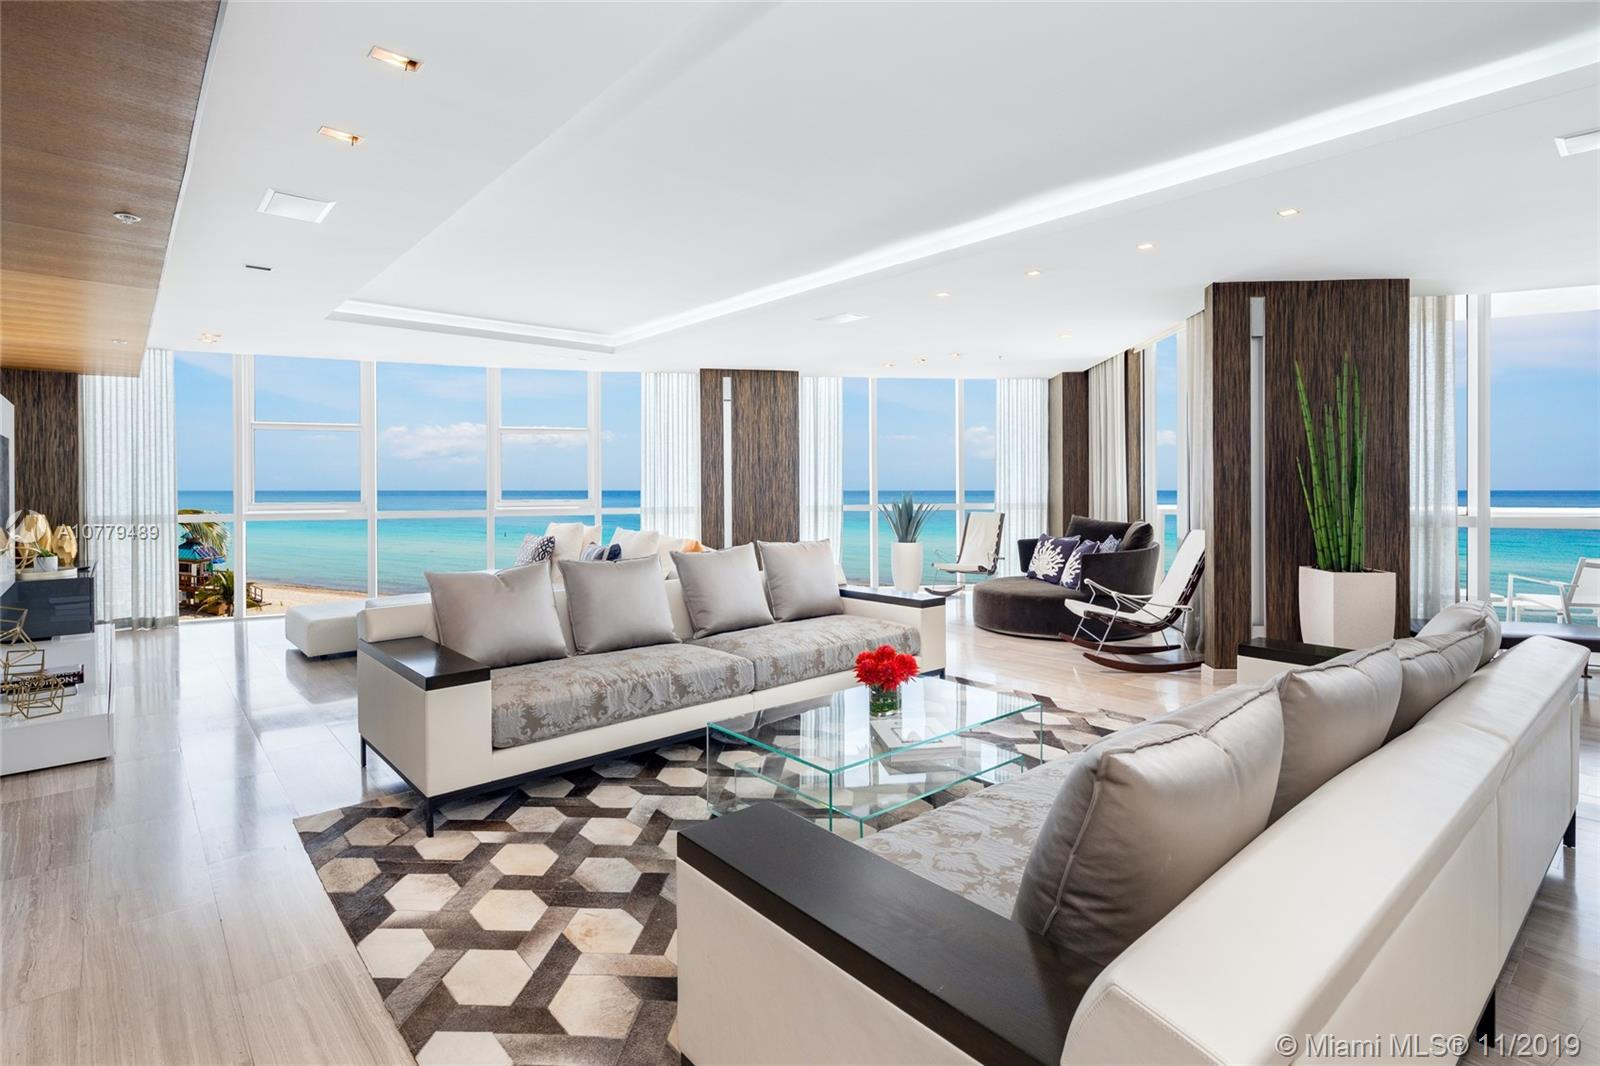 18201 Collins Ave, 509 - Sunny Isles Beach, Florida